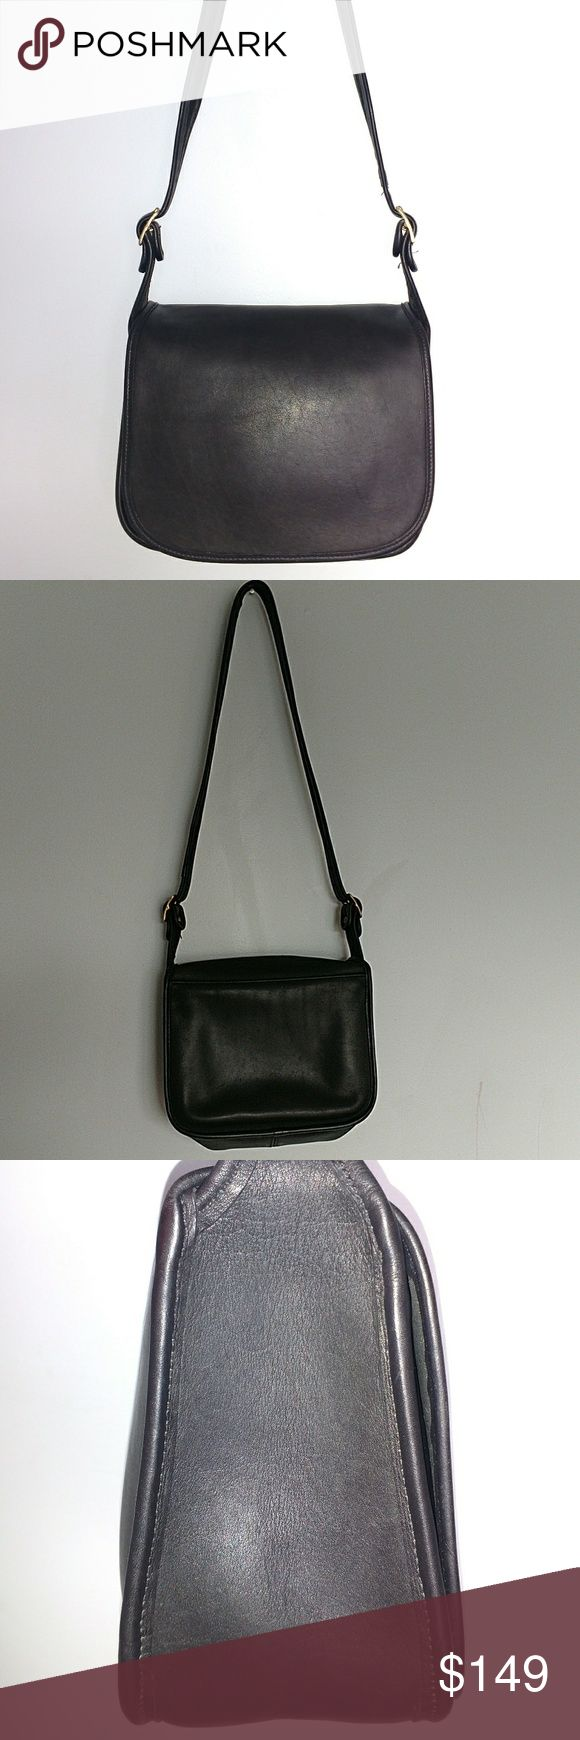 """Vintage COACH classic pouch saddle bag In great used condition with no tears! It has a slip pocket under the flap in front and a zippered pocket inside. Unlined suede interior with no stains. Measures approximately 10 X 9 X 4. Adjustable shoulder strap with 4 settings. Maximum strap drop is 18"""". 100% glove tanned leather with gold brass hardware. Cleaned and conditioned and ready to be used. Coach Bags Shoulder Bags"""